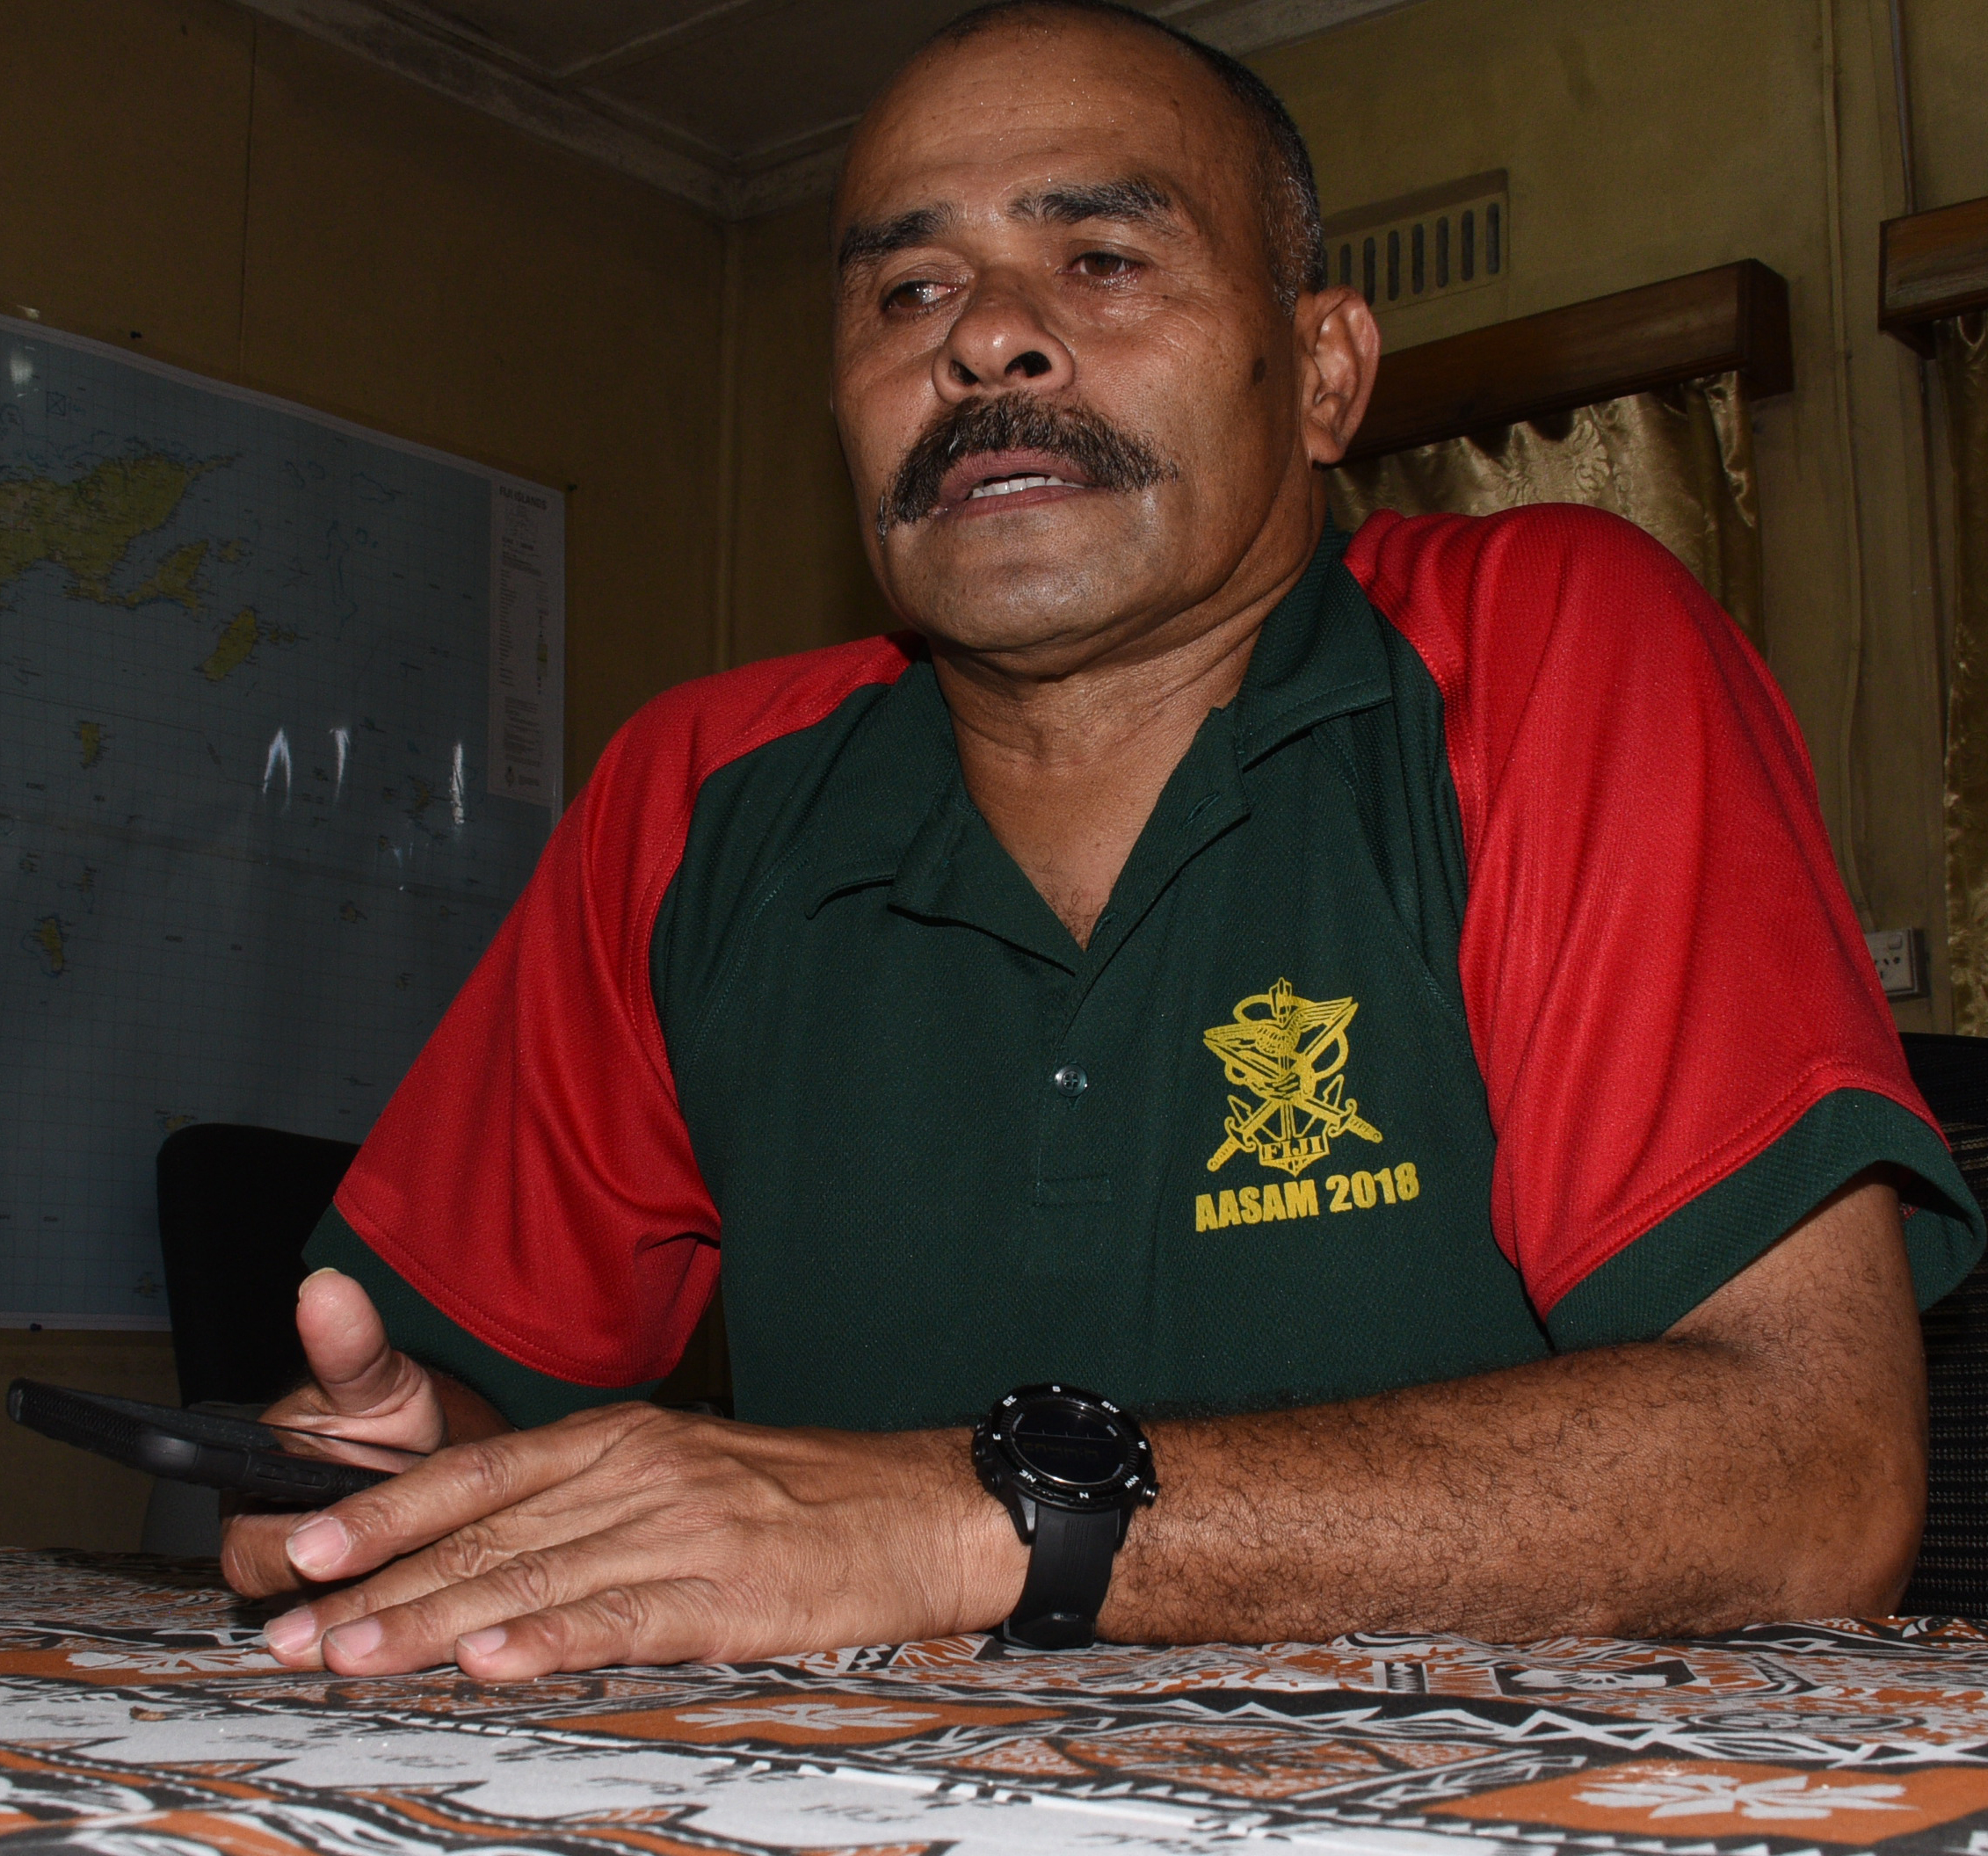 Major Henry Makaba of RFMF will be leadeing our 10 member team to Aasam 2018 competition. Photo: Ronald Kumar.